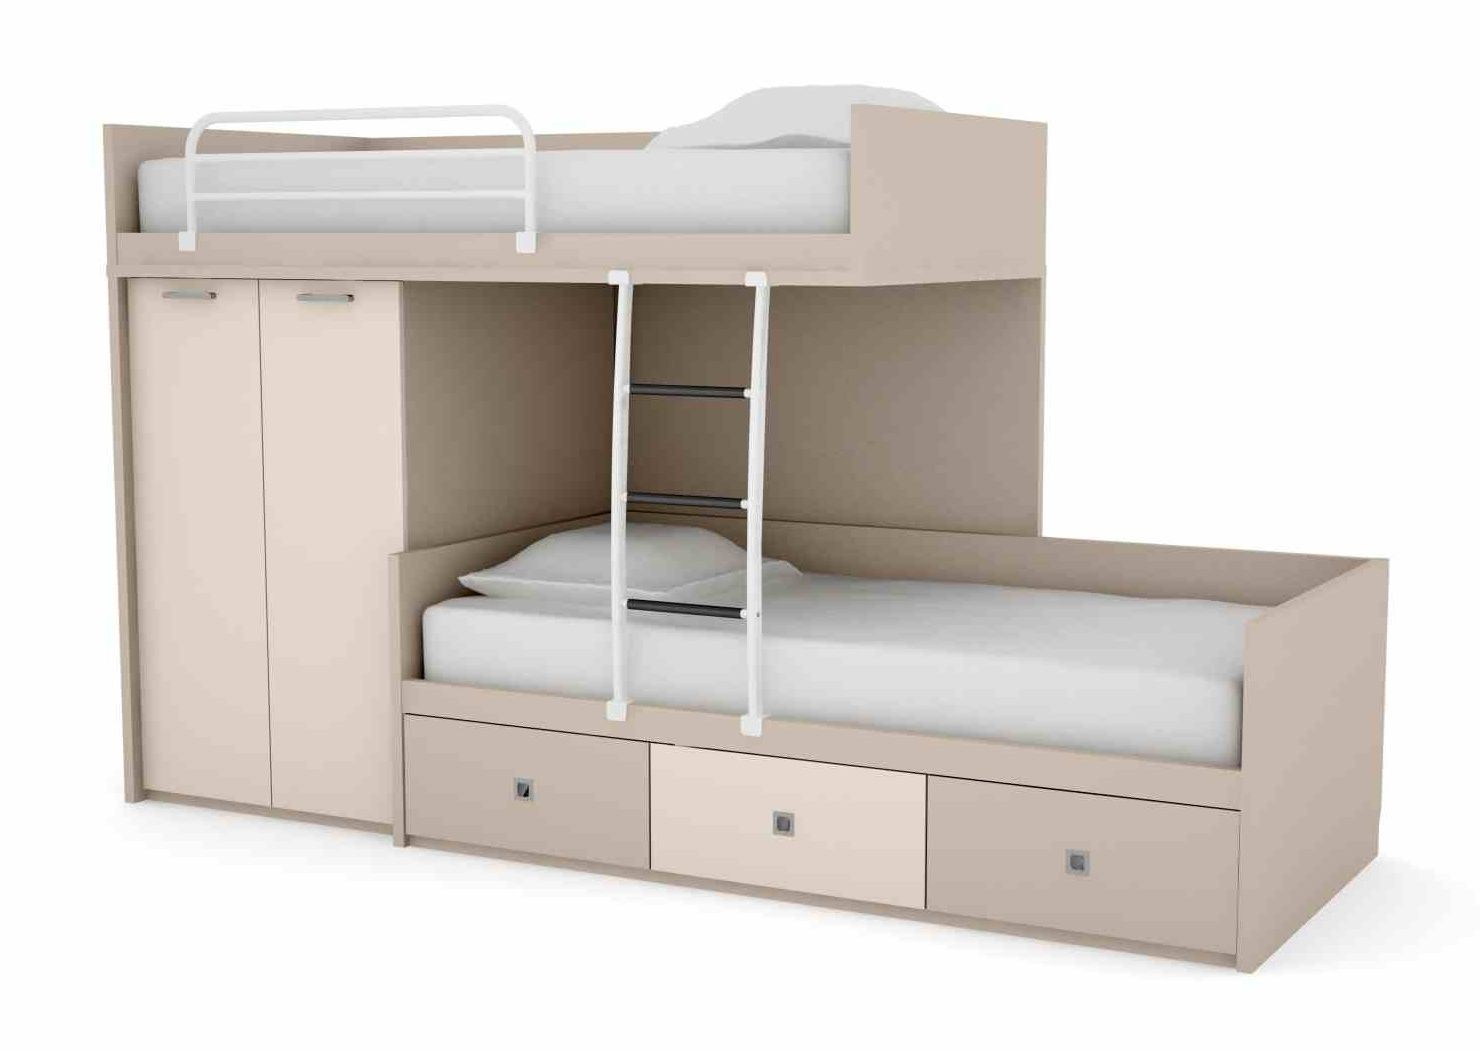 Bunk Bed Space Saver bunk beds 5 30 fresh space saving bunk beds ideas for your home